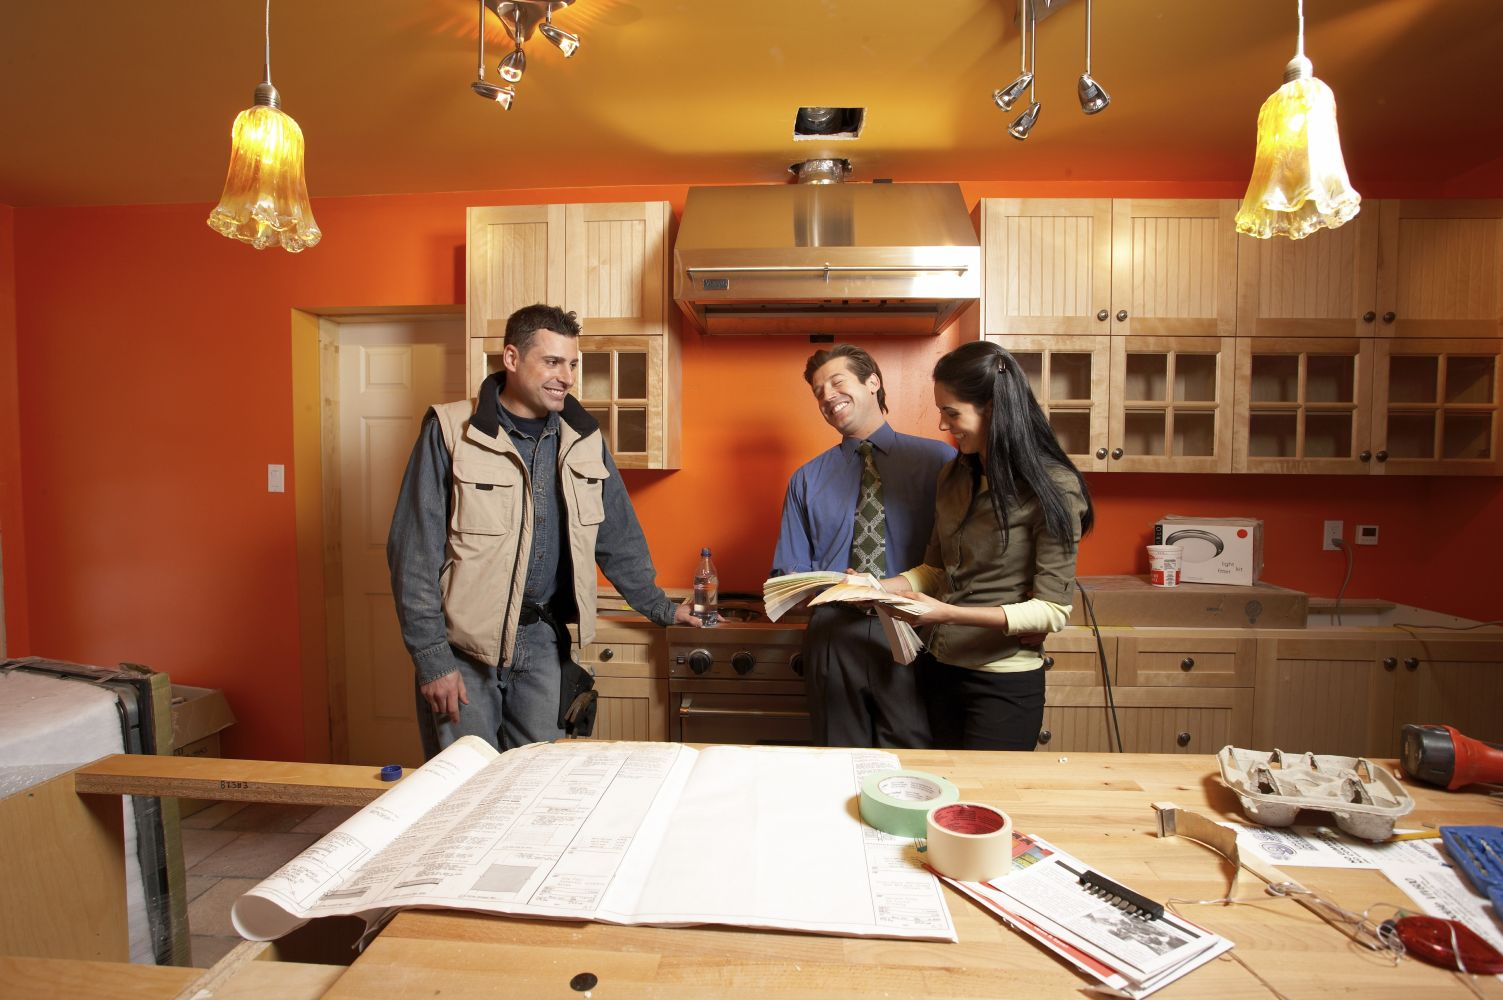 about kitchen remodeling lincoln ne Educated and Professional